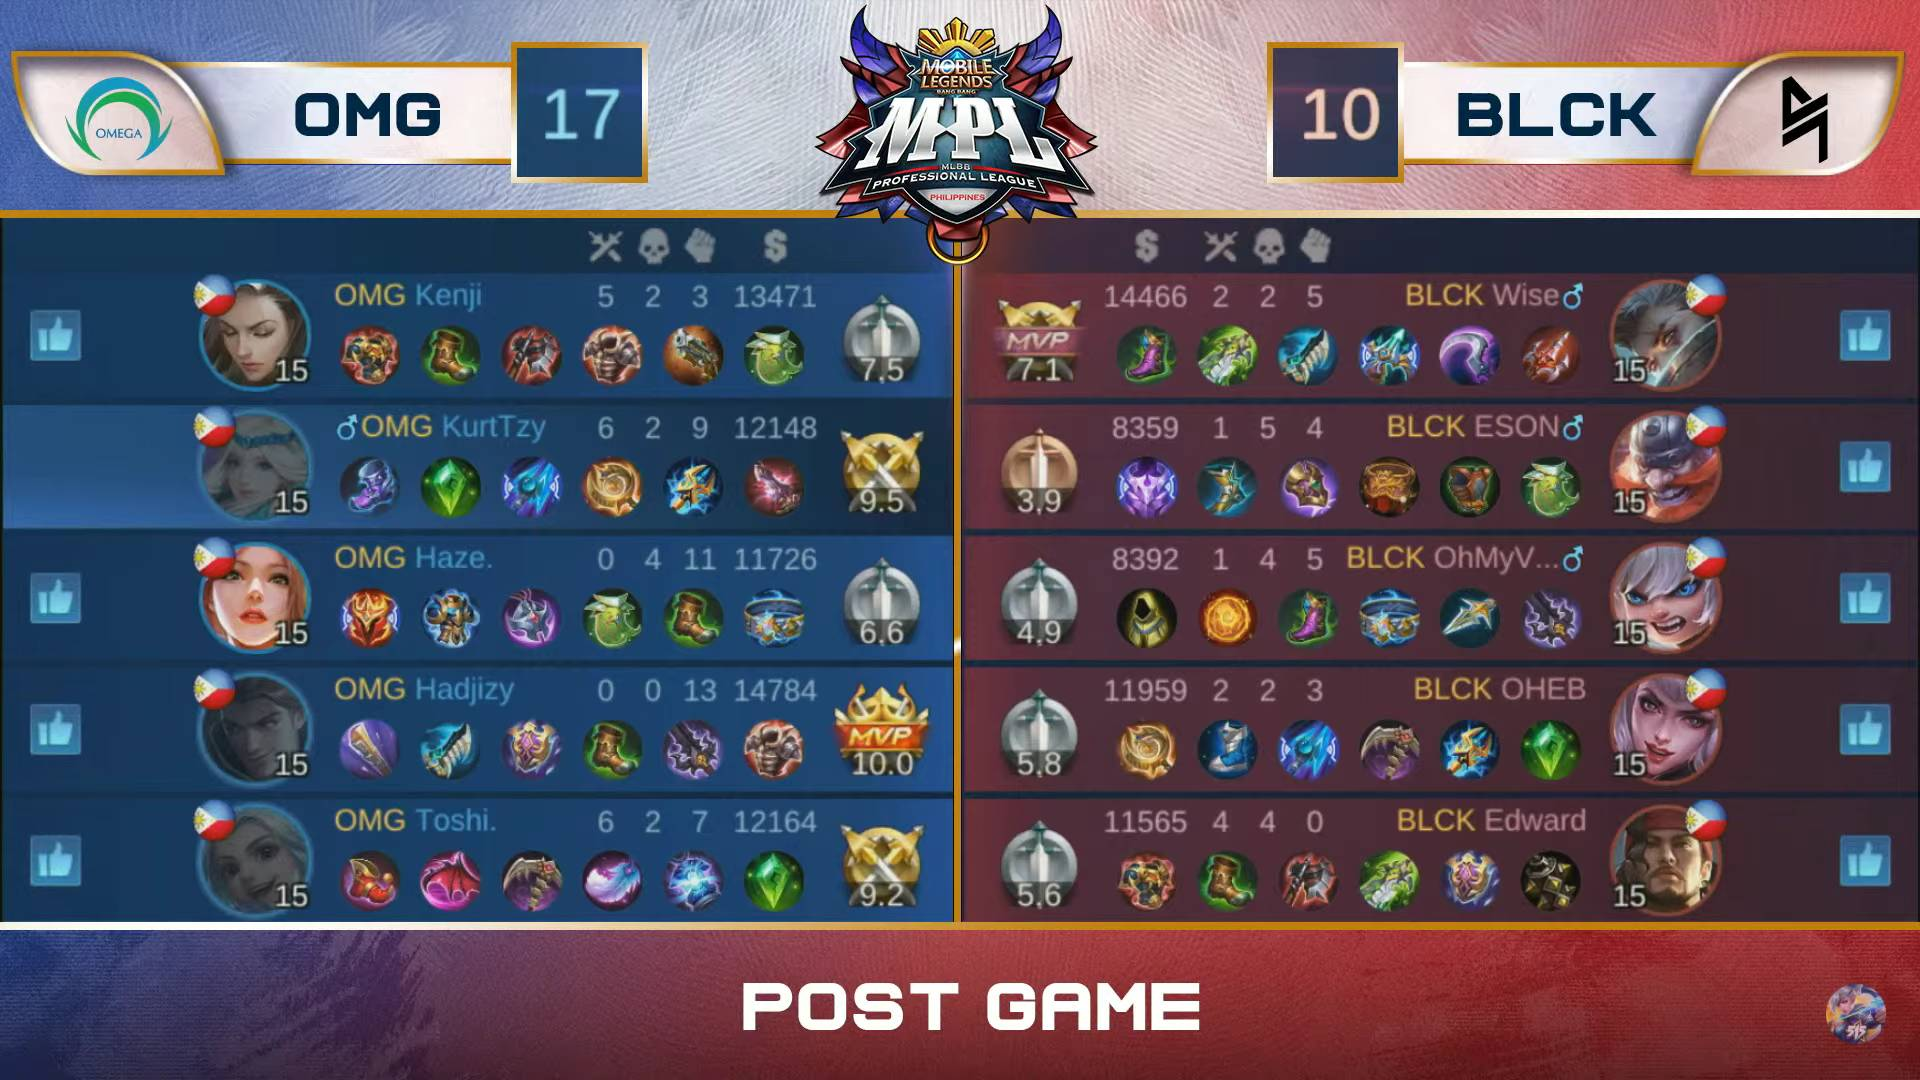 MPL-PH-7-Blacklist-def-Omega-Game-2 Blacklist remains unblemished, deals Omega third straight loss in MPL-PH ESports Mobile Legends MPL-PH News  - philippine sports news